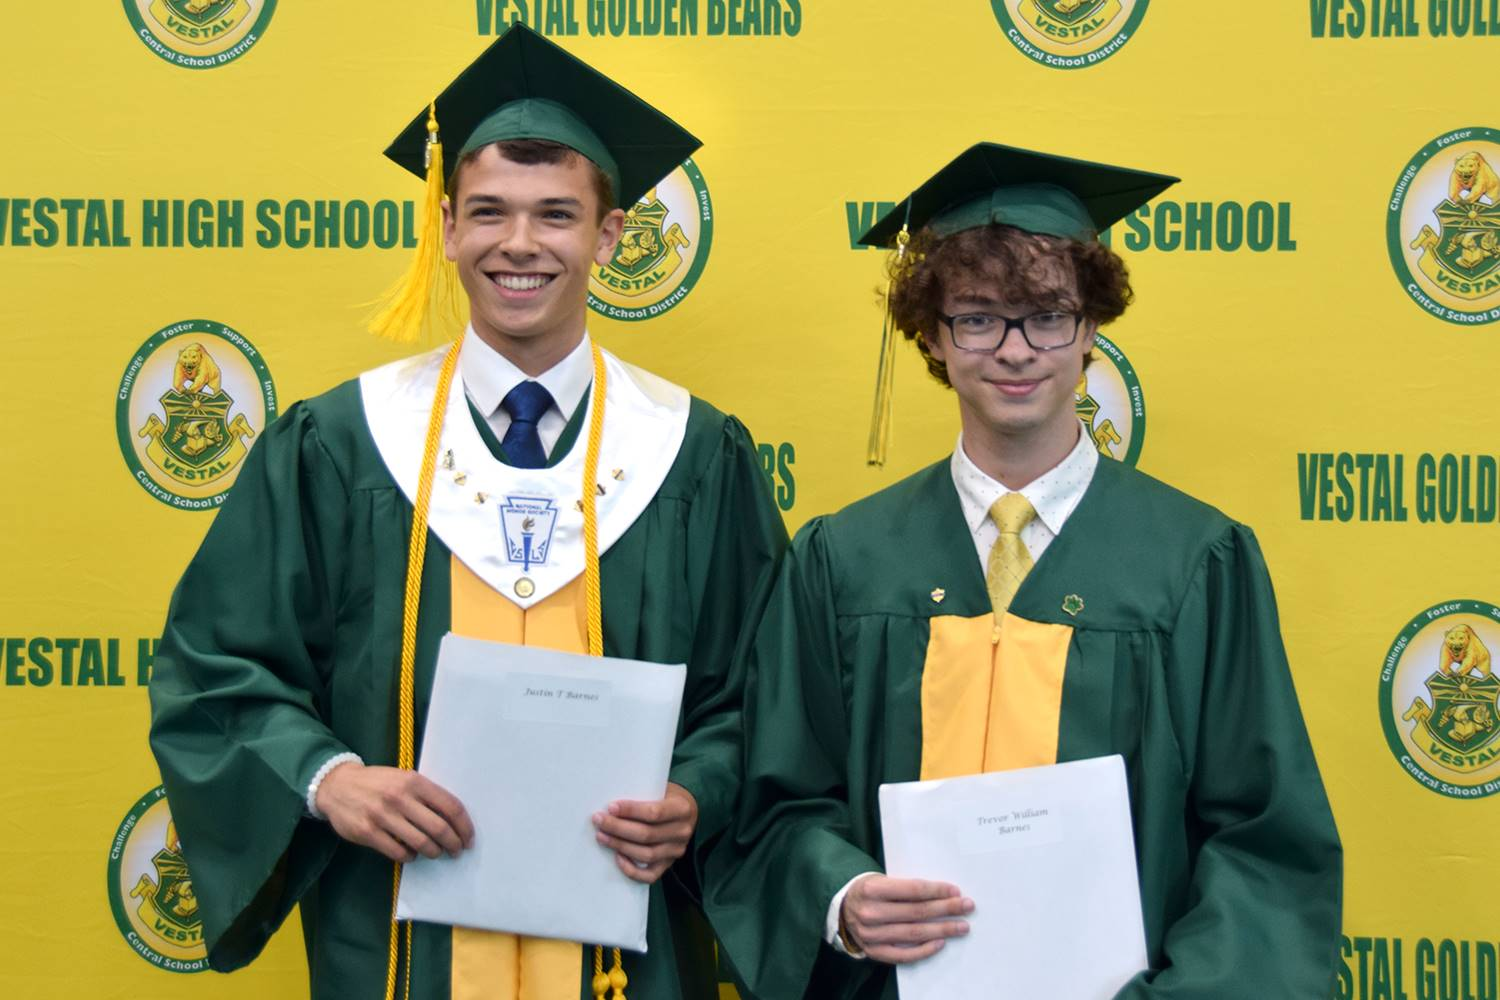 Two brothers, Vestal High School graduates stand in front of the yellow and green wall holding their